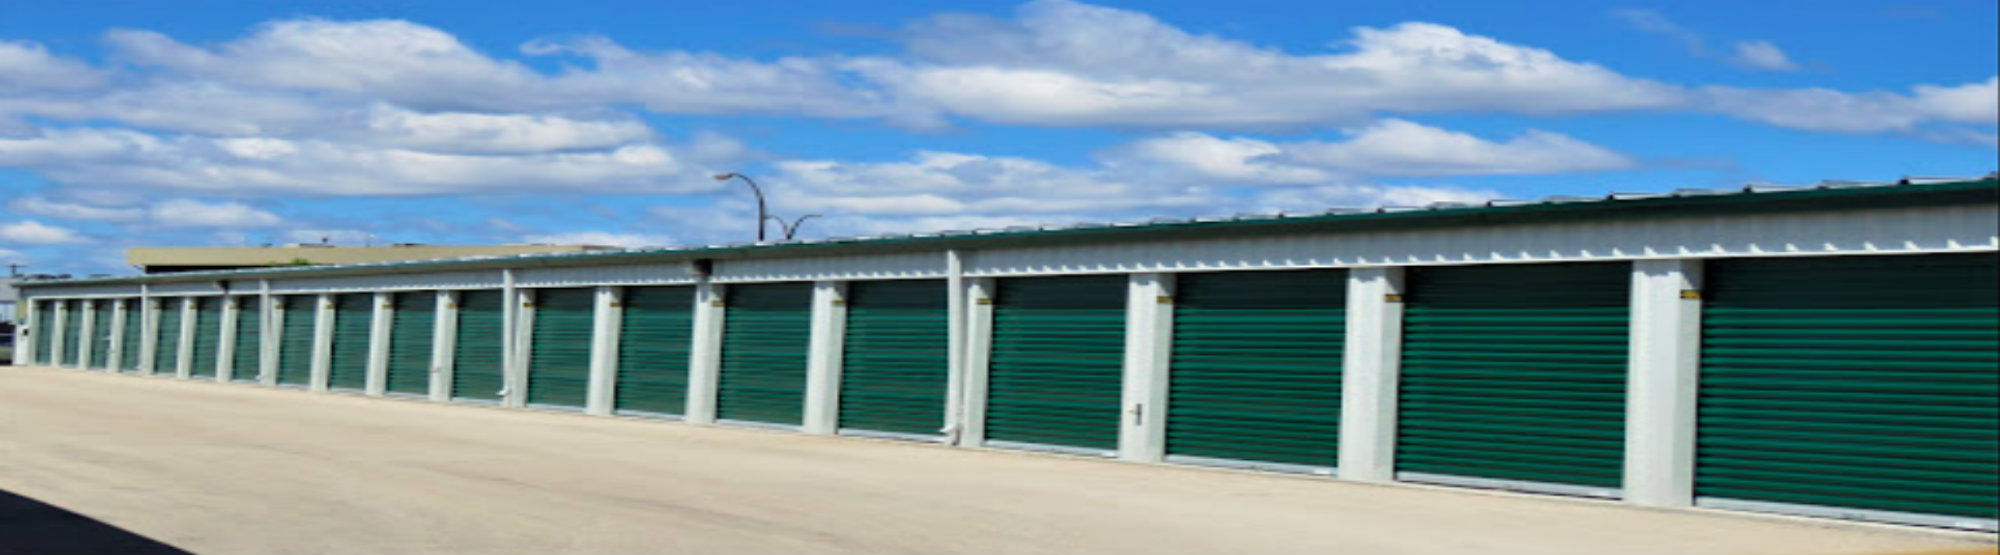 Large Units Available & Self Storage Winnipeg - Best Storage Facility Near You in Winnipeg ...